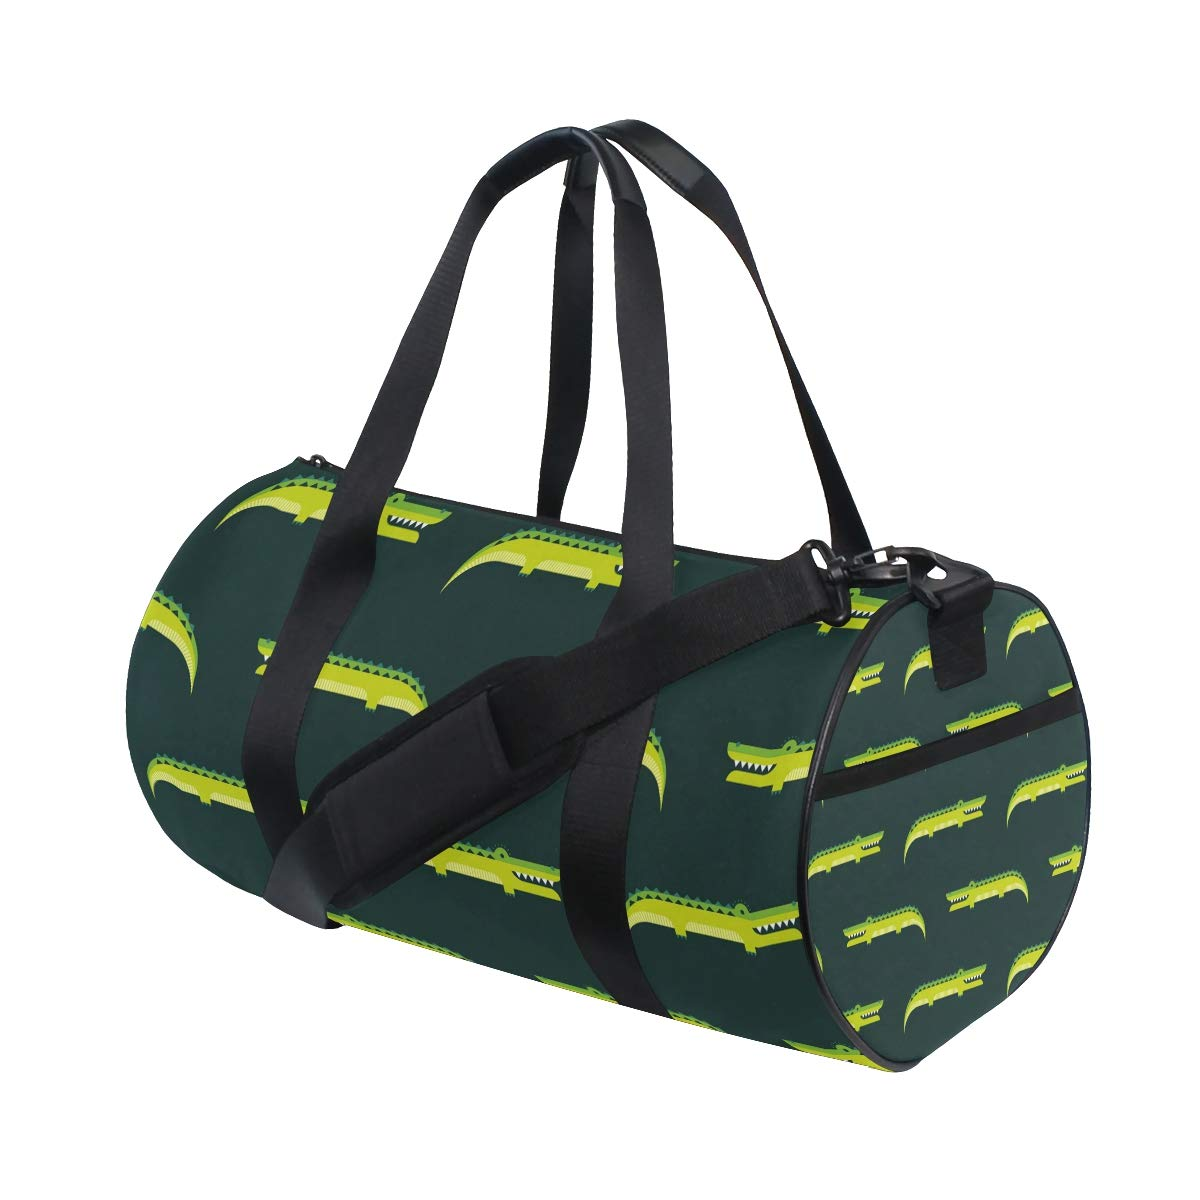 Unisex's Crocodile Duffel Bag Travel Tote Luggage Bag Gym Sports Luggage Bag